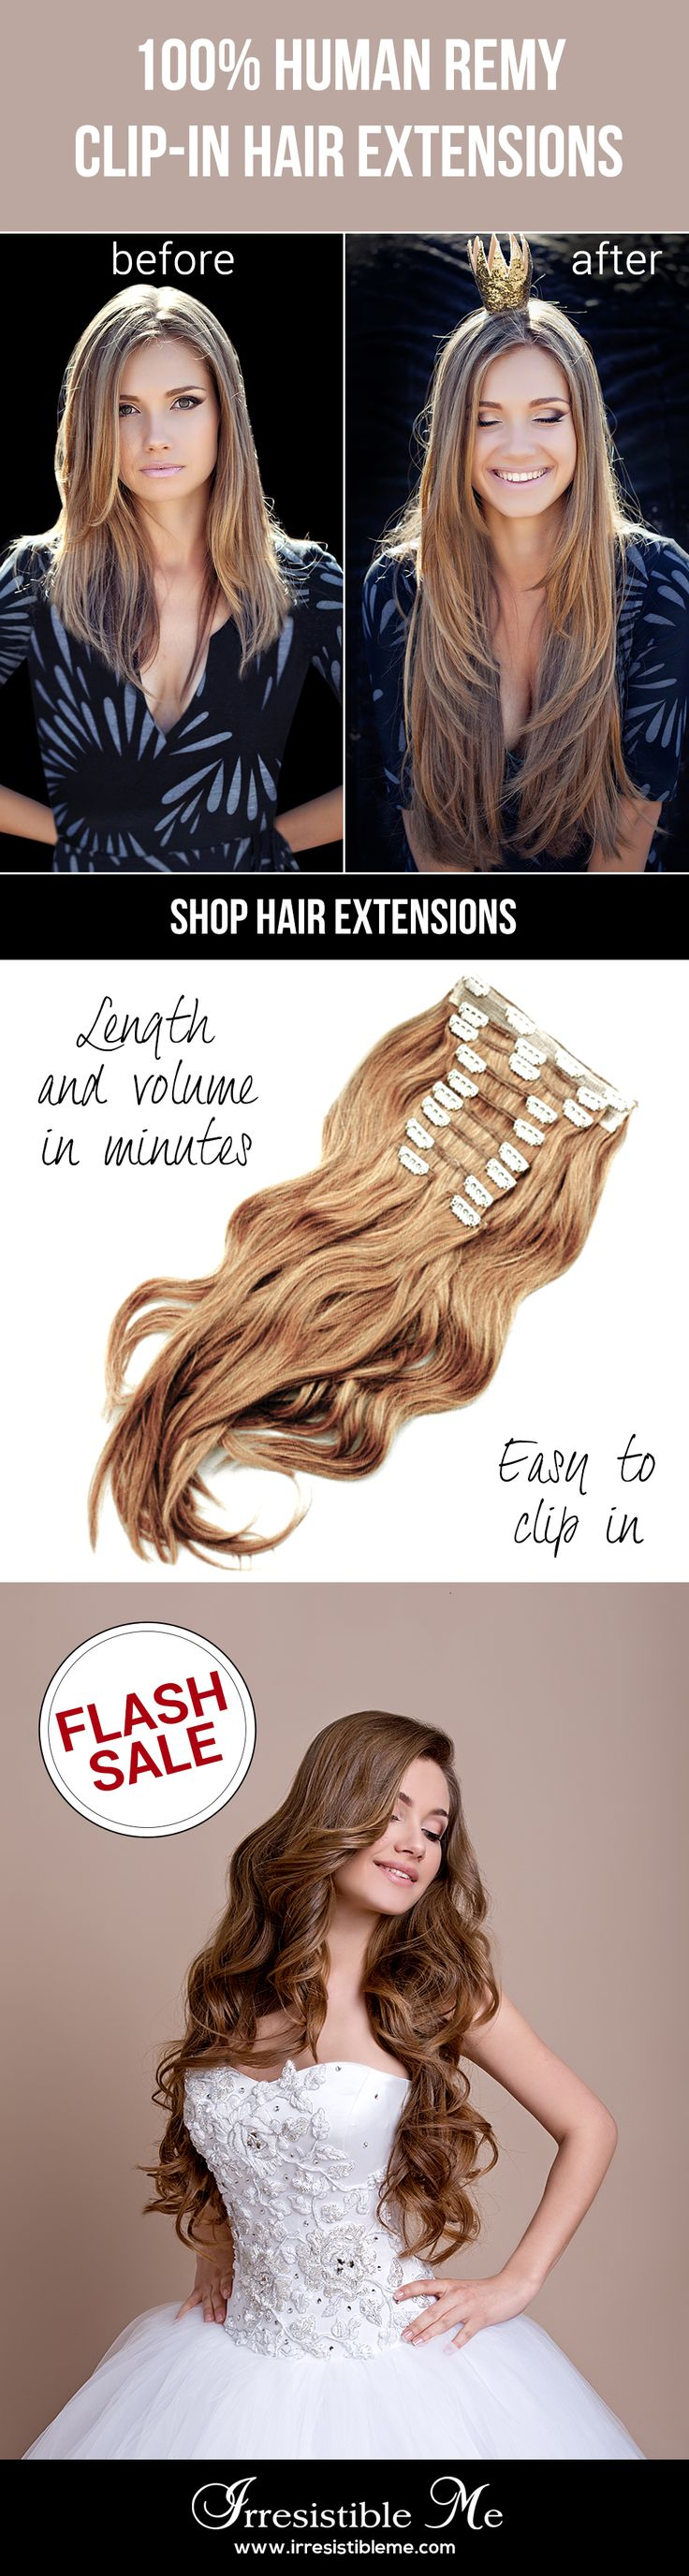 Make a dramatic hairstyle change with Irresistible Me 100% human Remy clip-in hair extensions. You can add length and volume in a matter of minutes and you get to choose the color, length and weight. Also try our wigs, ponytails, fantastic hair tools and hair care. Sign up and get up to $50 off with our SEMI ANNUAL SALE! (only until 06/30/2016)